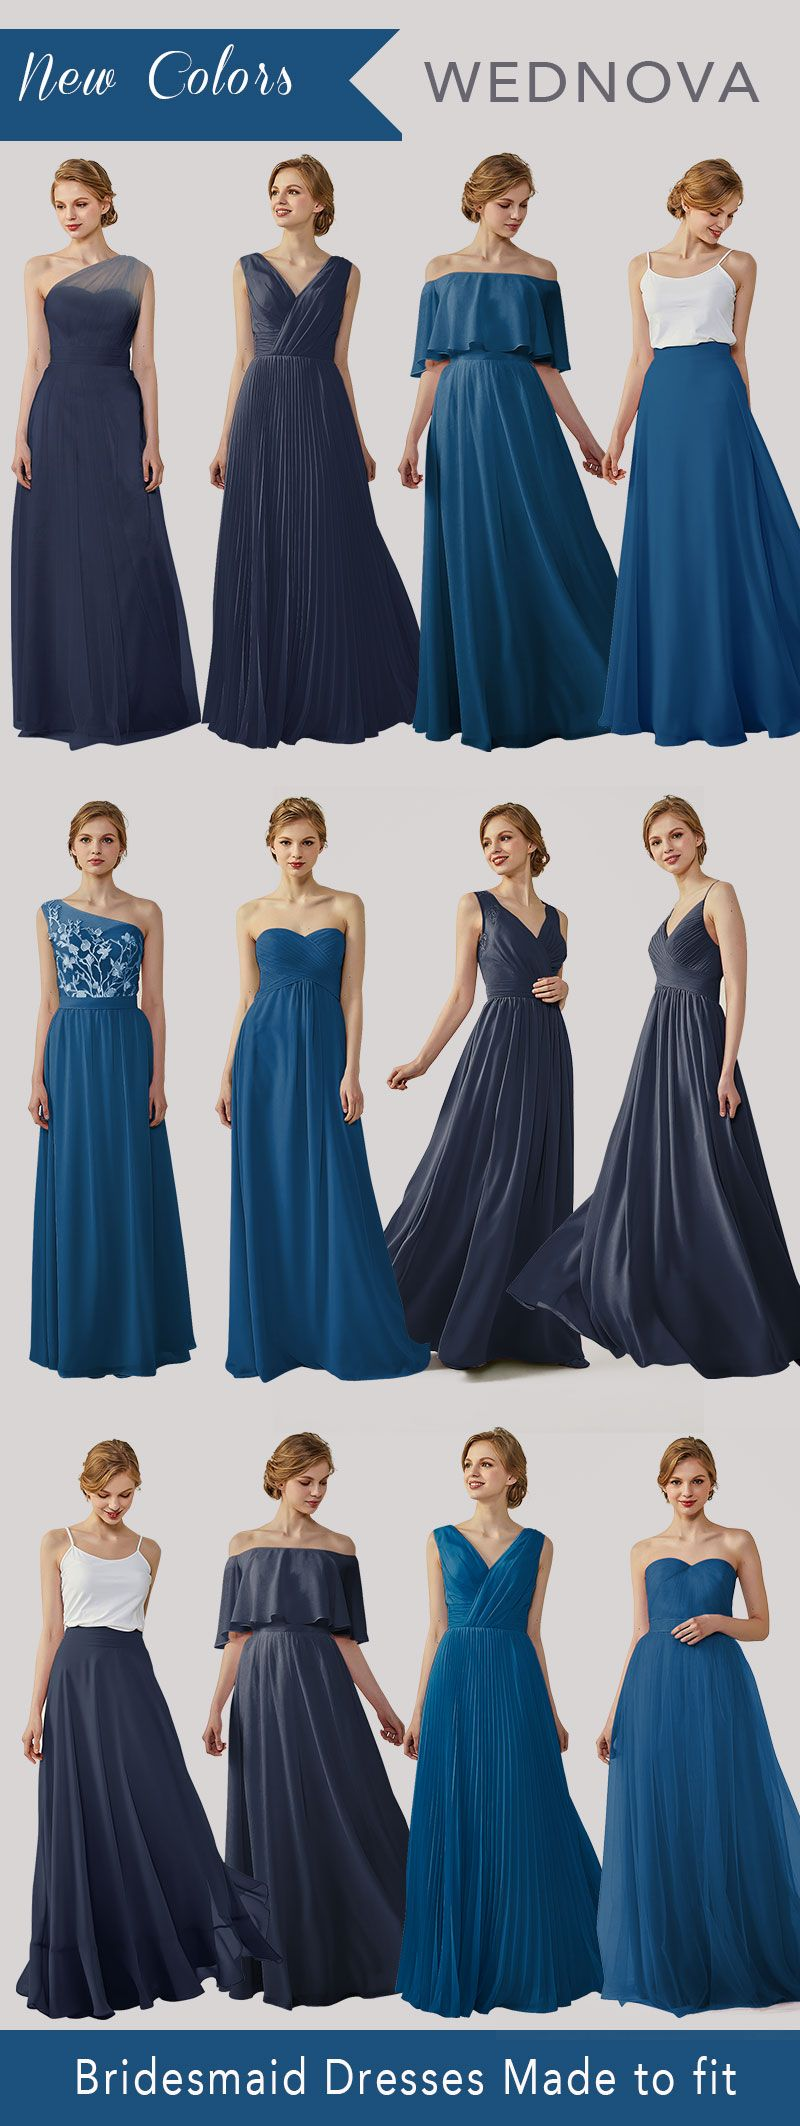 Ink blue bridesmaid dresses off the shoulder dresses boho v neck